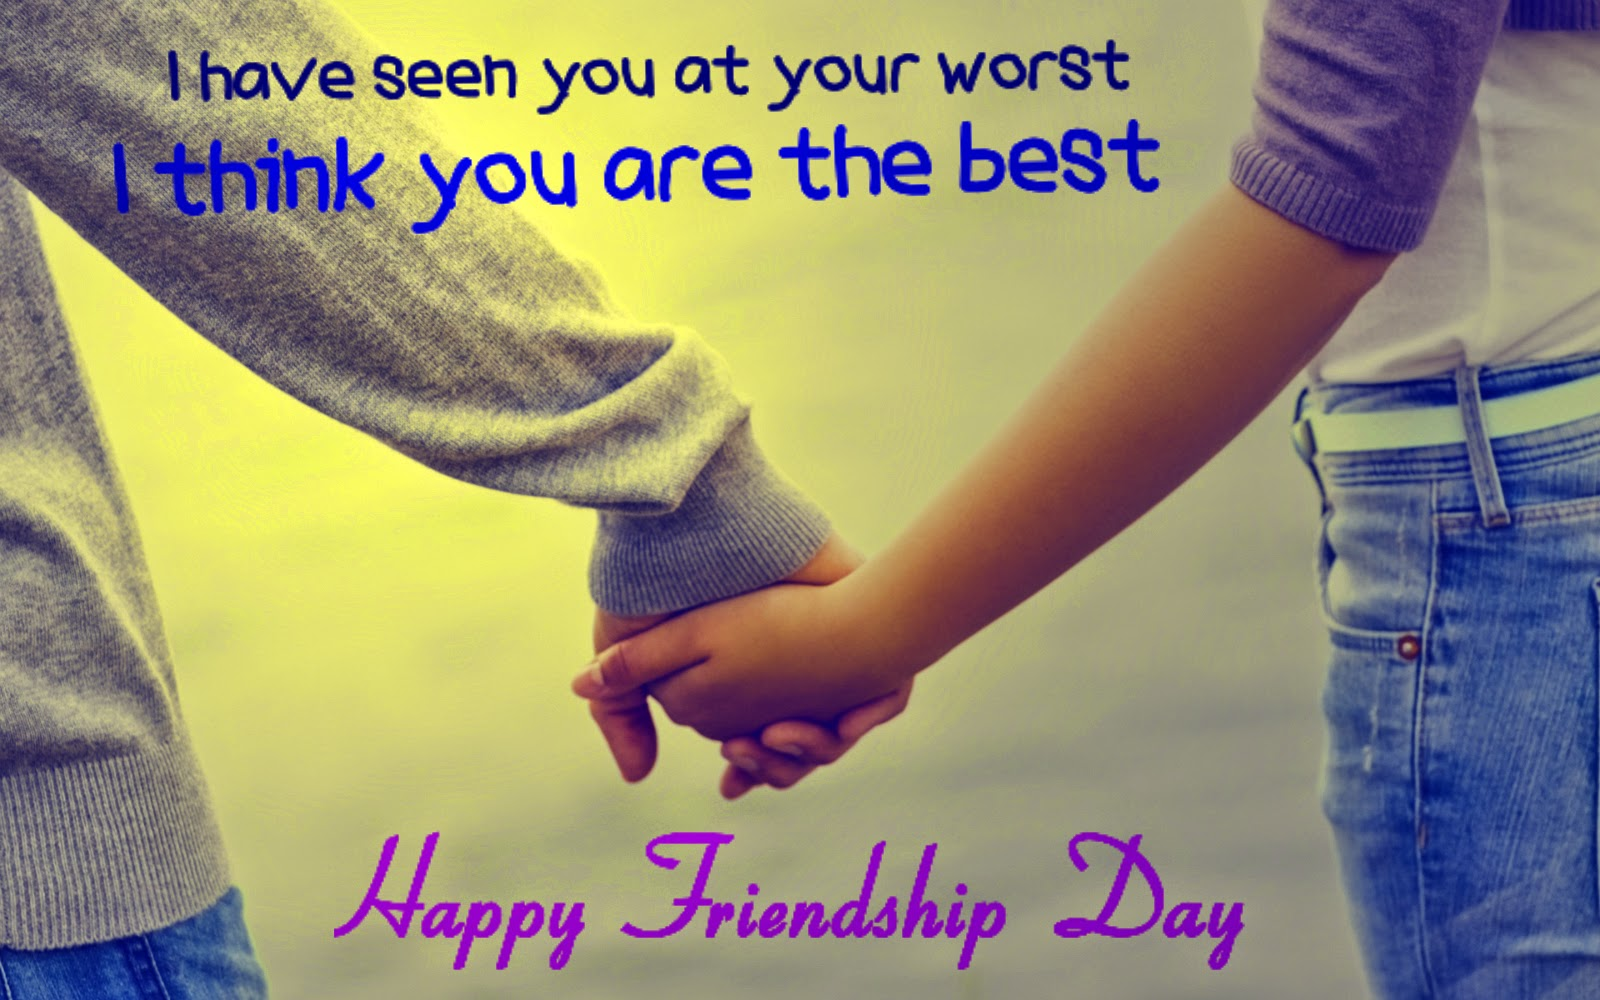 Happy Friendship Day Love Quotes Daily Roabox